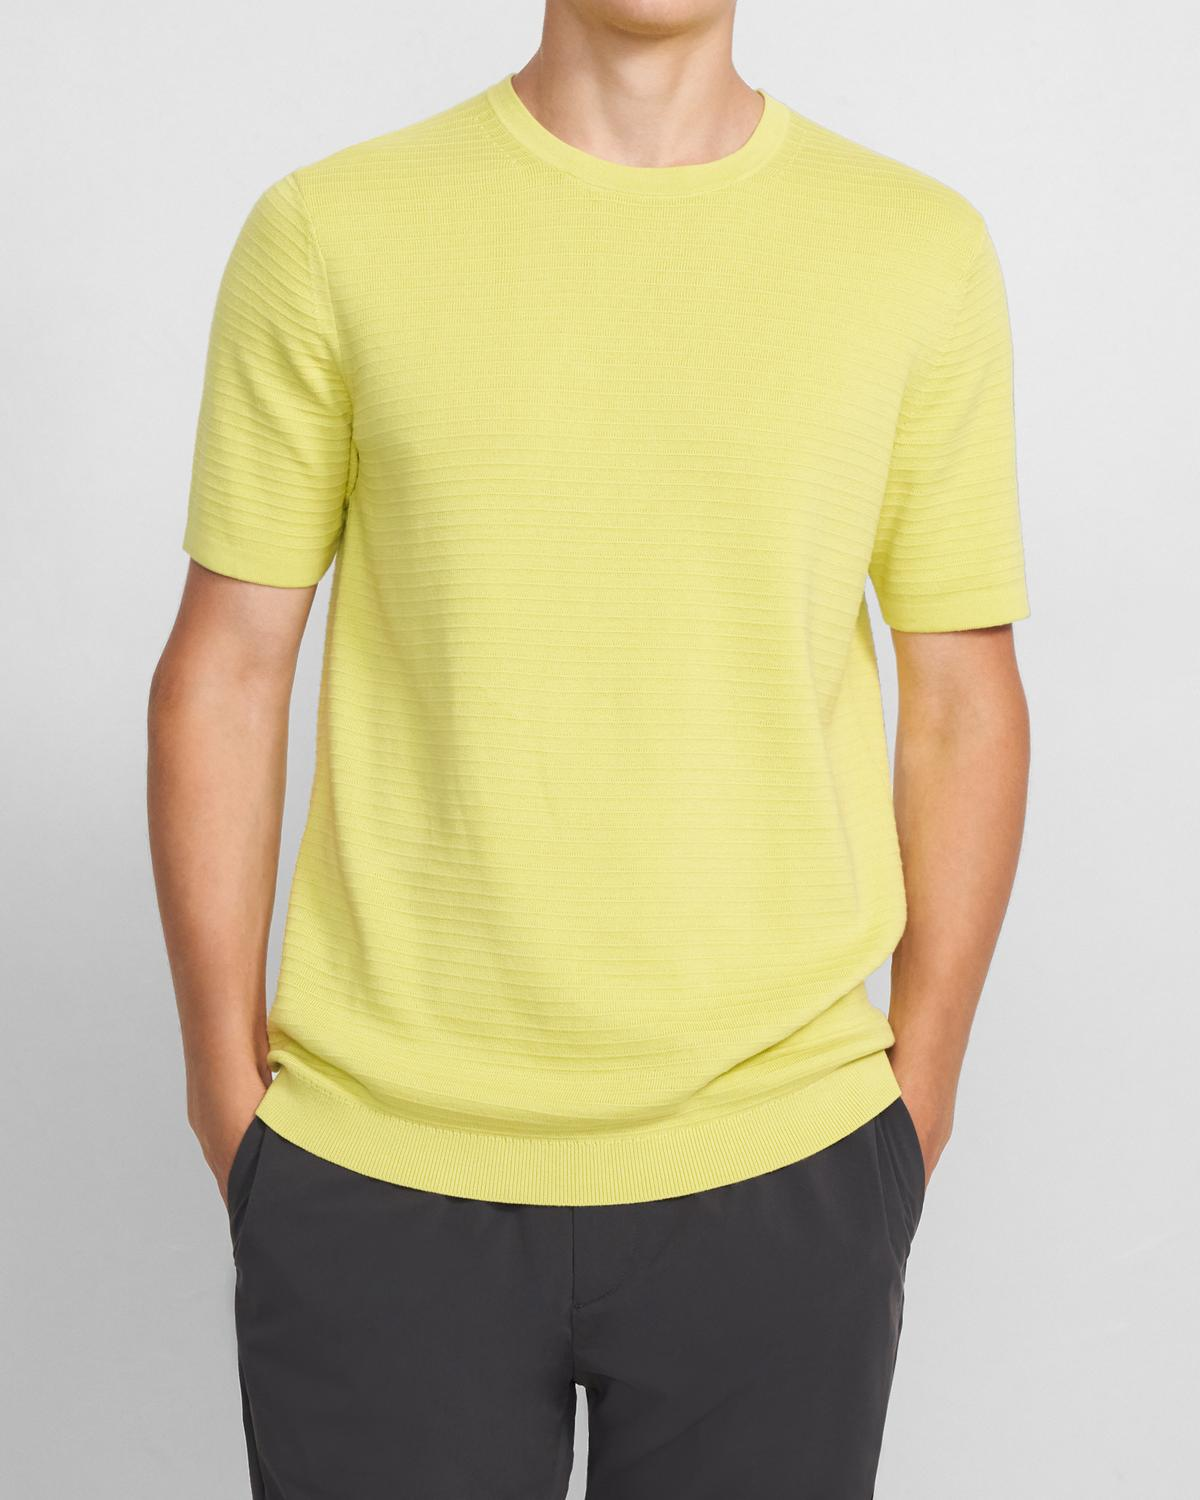 Gades Tee in Piqué Cotton 0 - click to view larger image